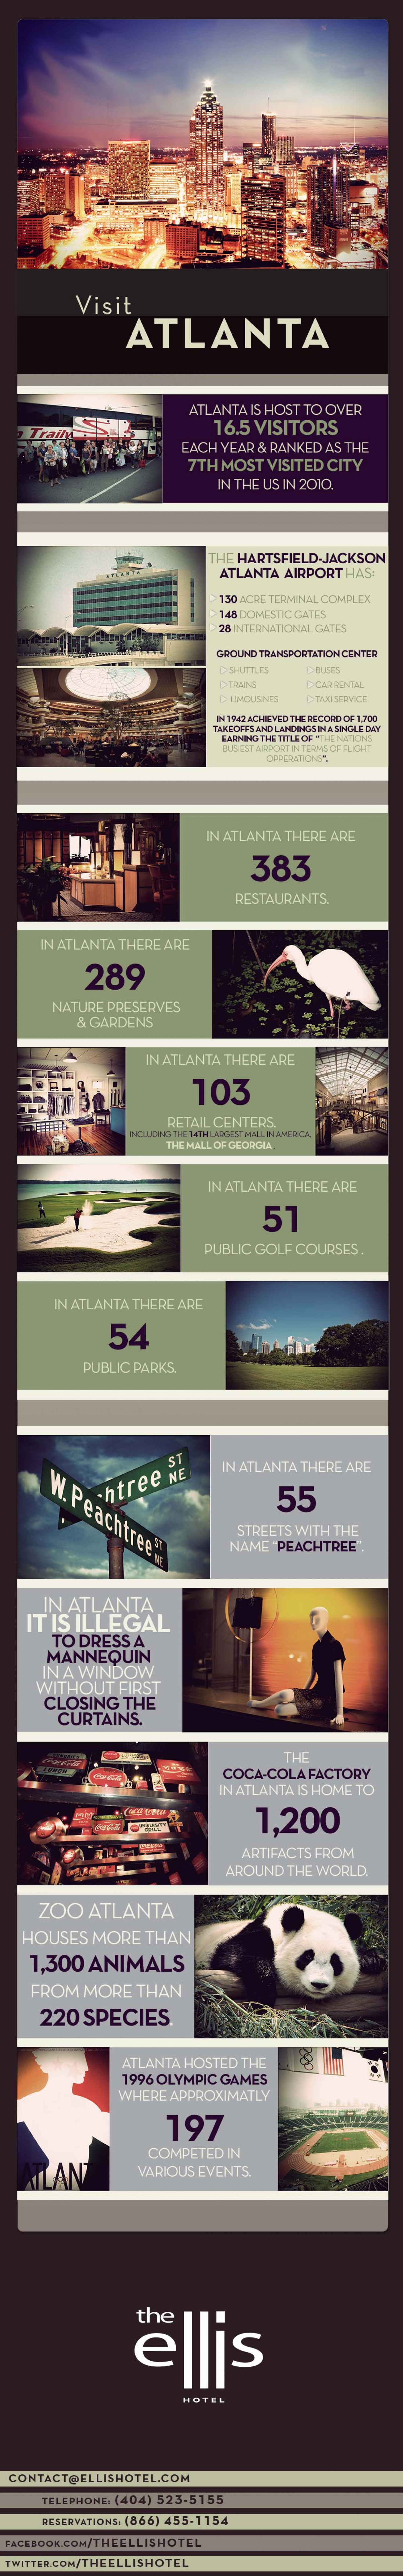 Local Events Near The Ellis Hotel Infographic